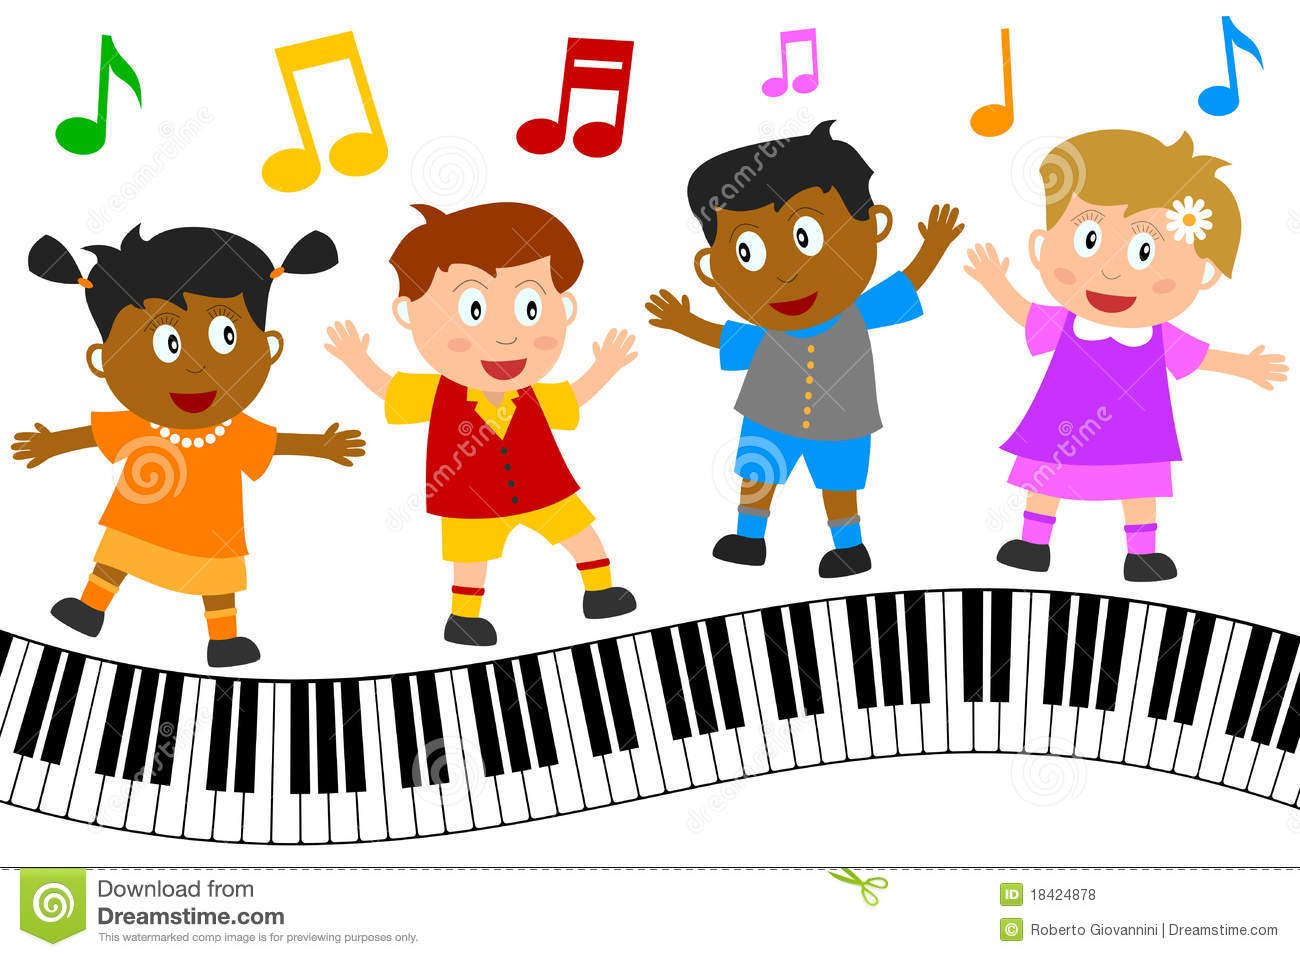 Kids Dancing On Piano Keyboard Stock Vector Illustration Of Funny Melodic 18424878